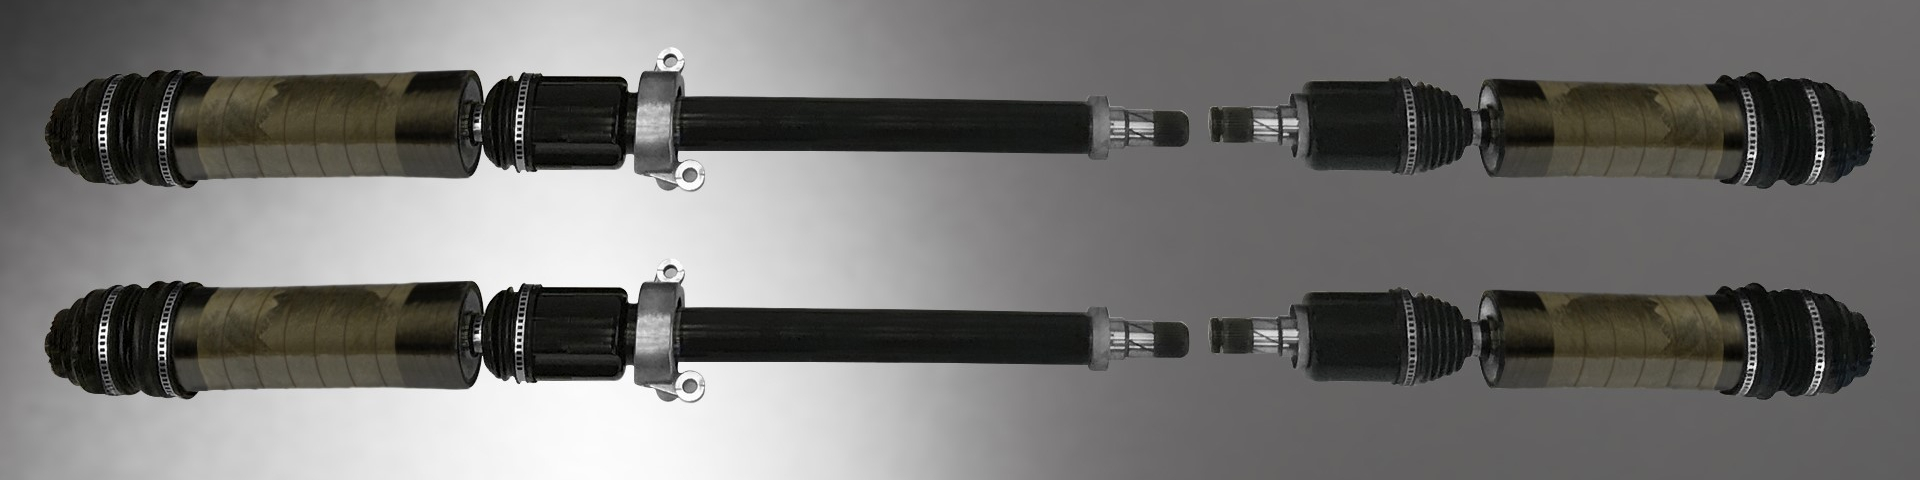 carbon fiber composite output shaft